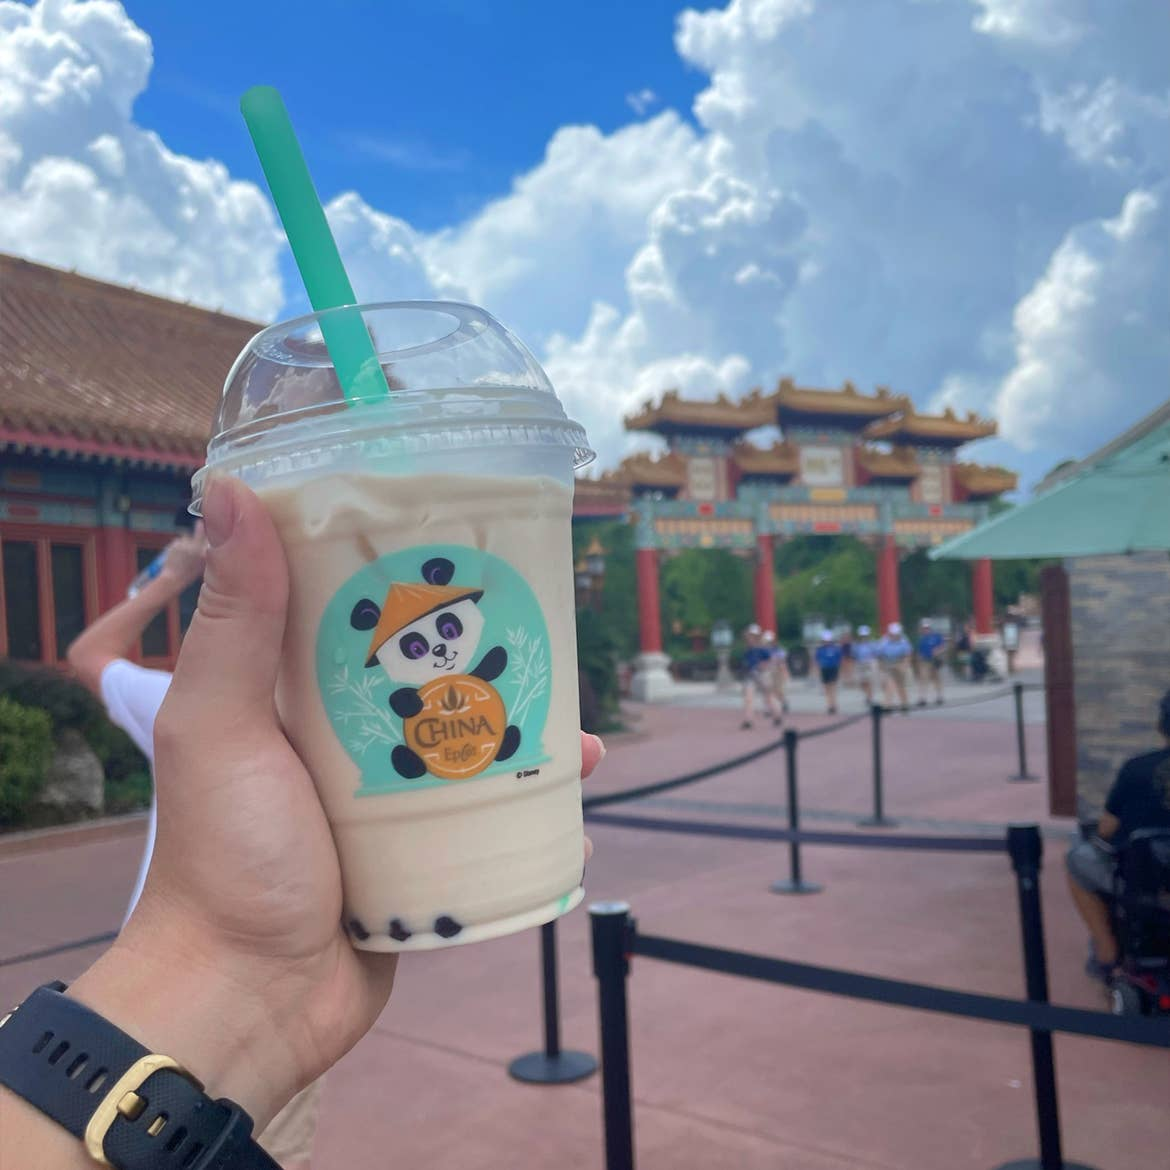 A hand holds a plastic cup of bubble tea with a panda graphic near the China Pavilion at Epcot.